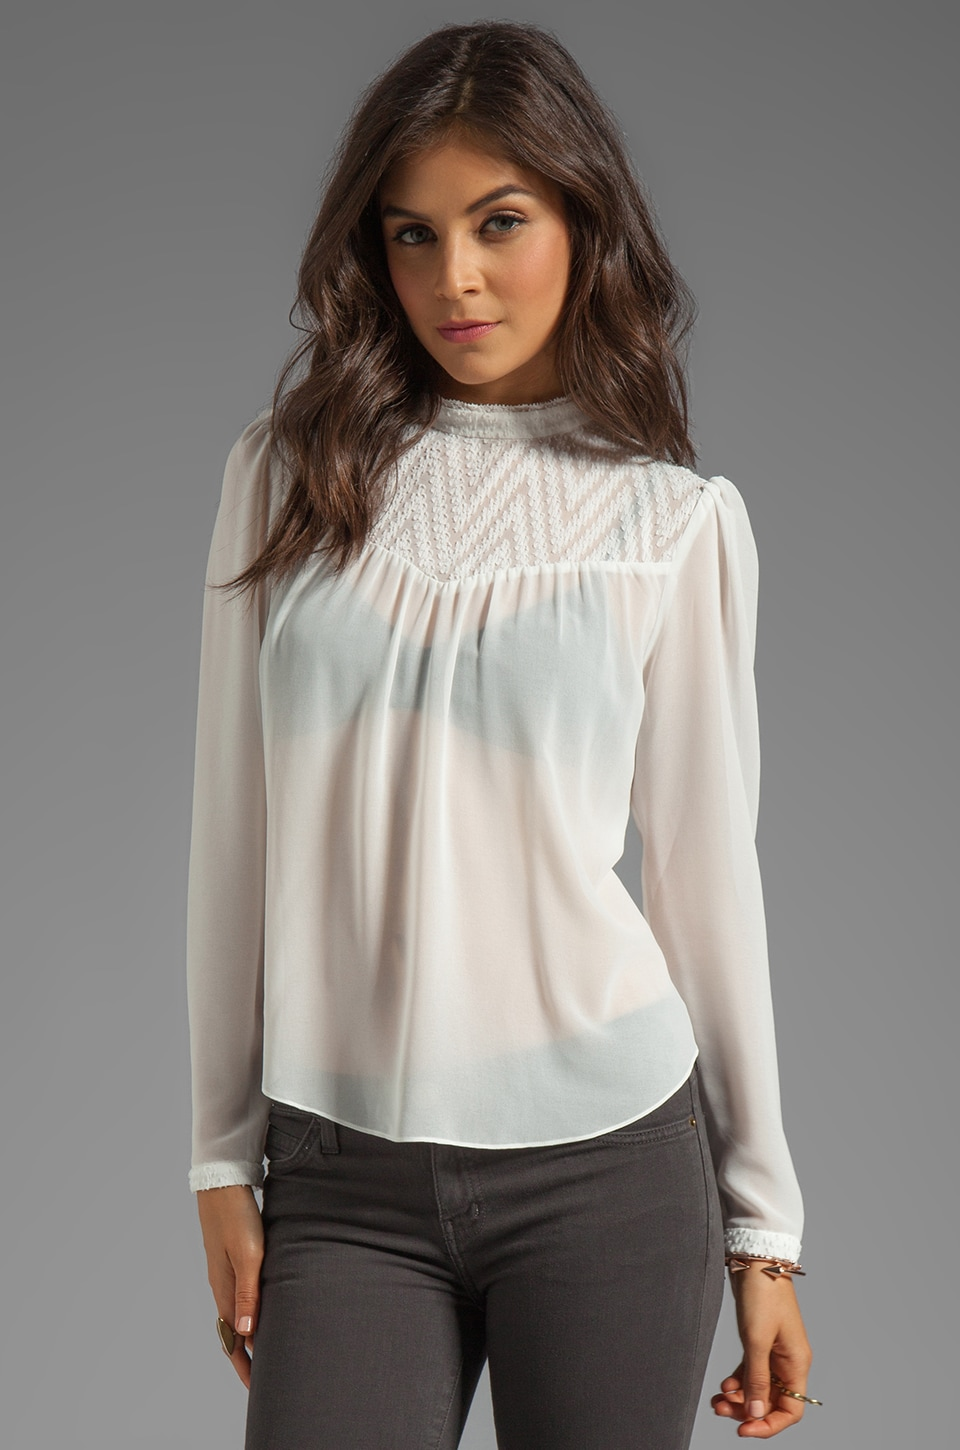 Dolce Vita Zenner Zigzag Dobby Top in White